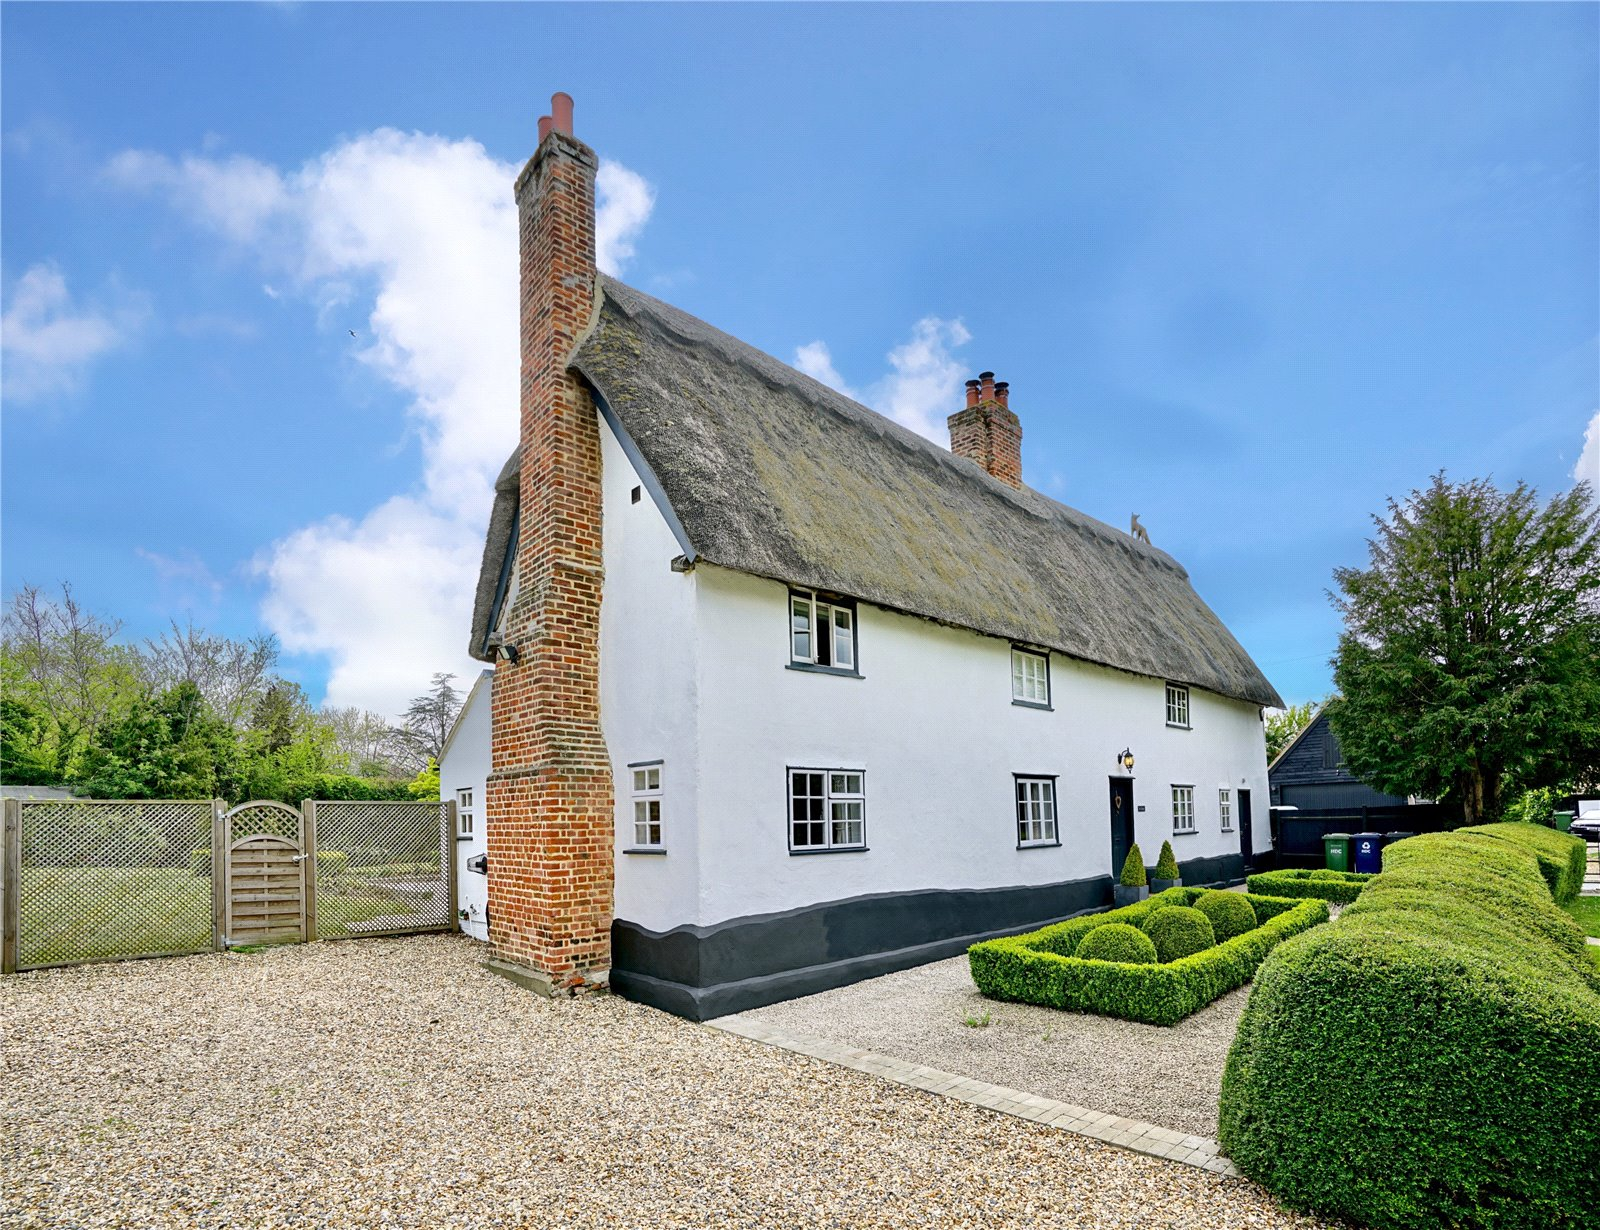 3 bed house for sale in Fox Street, Great Gransden  - Property Image 15